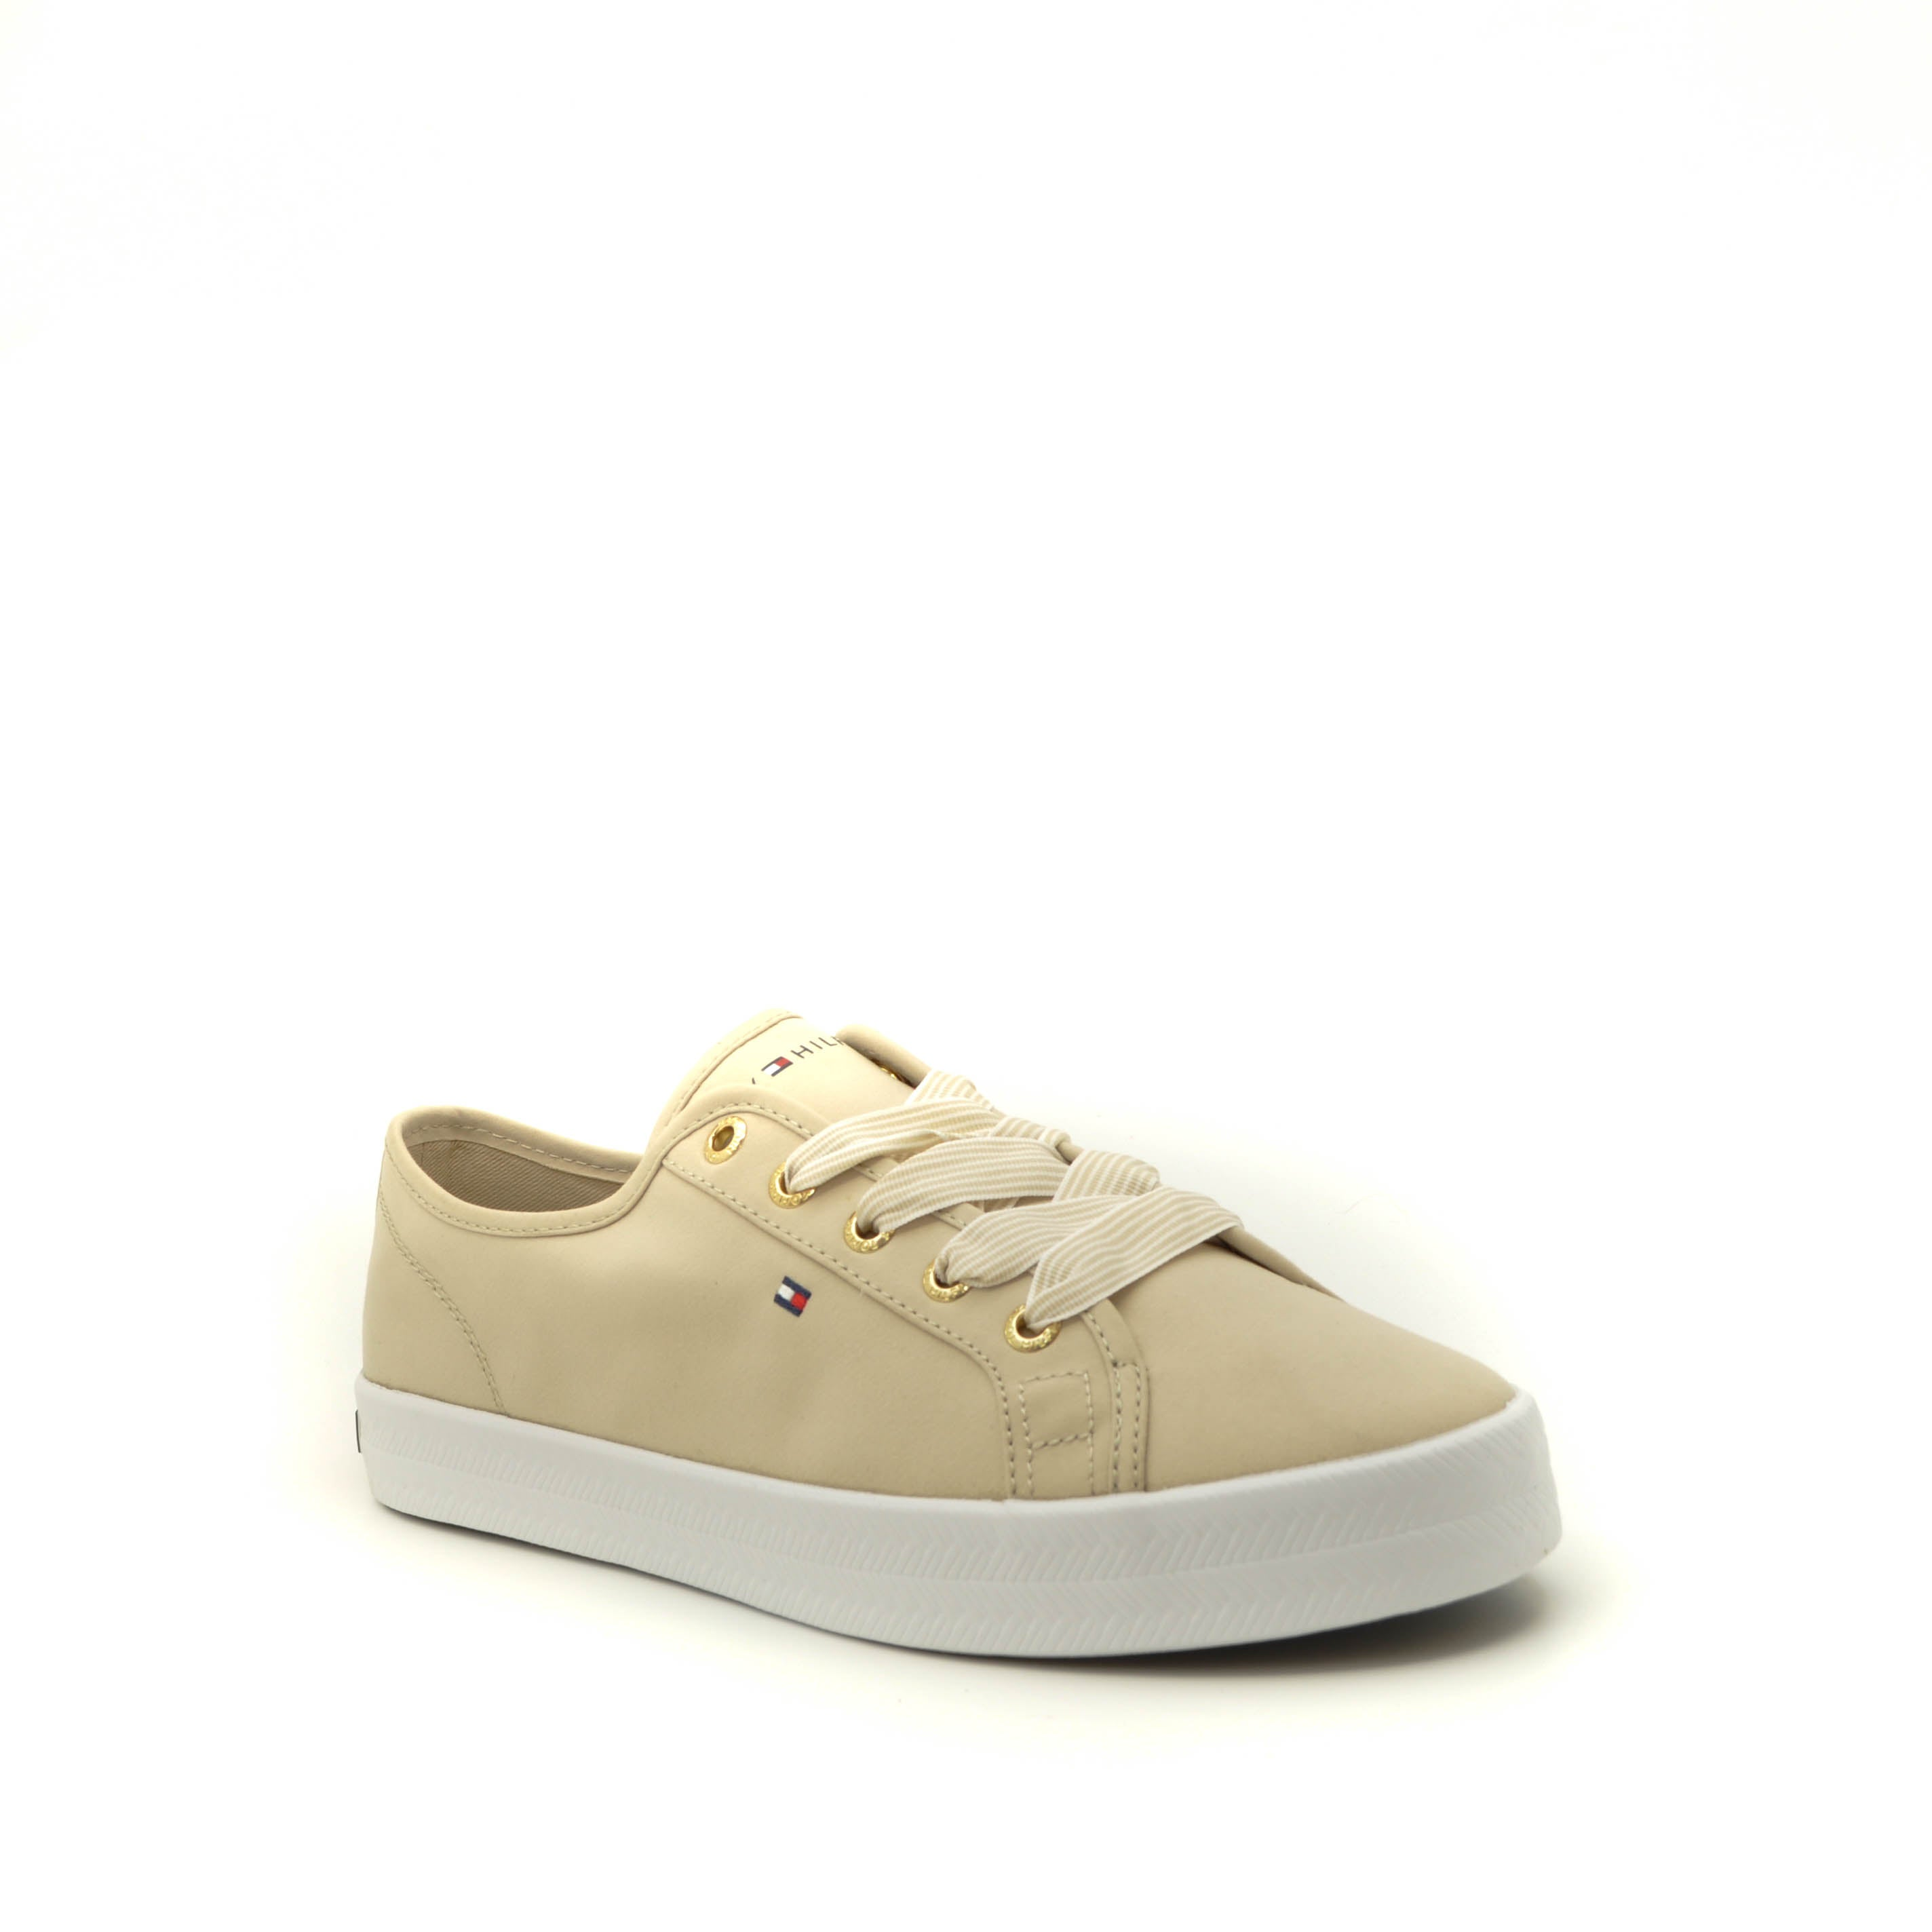 lace up shoes tommy hilfiger beige